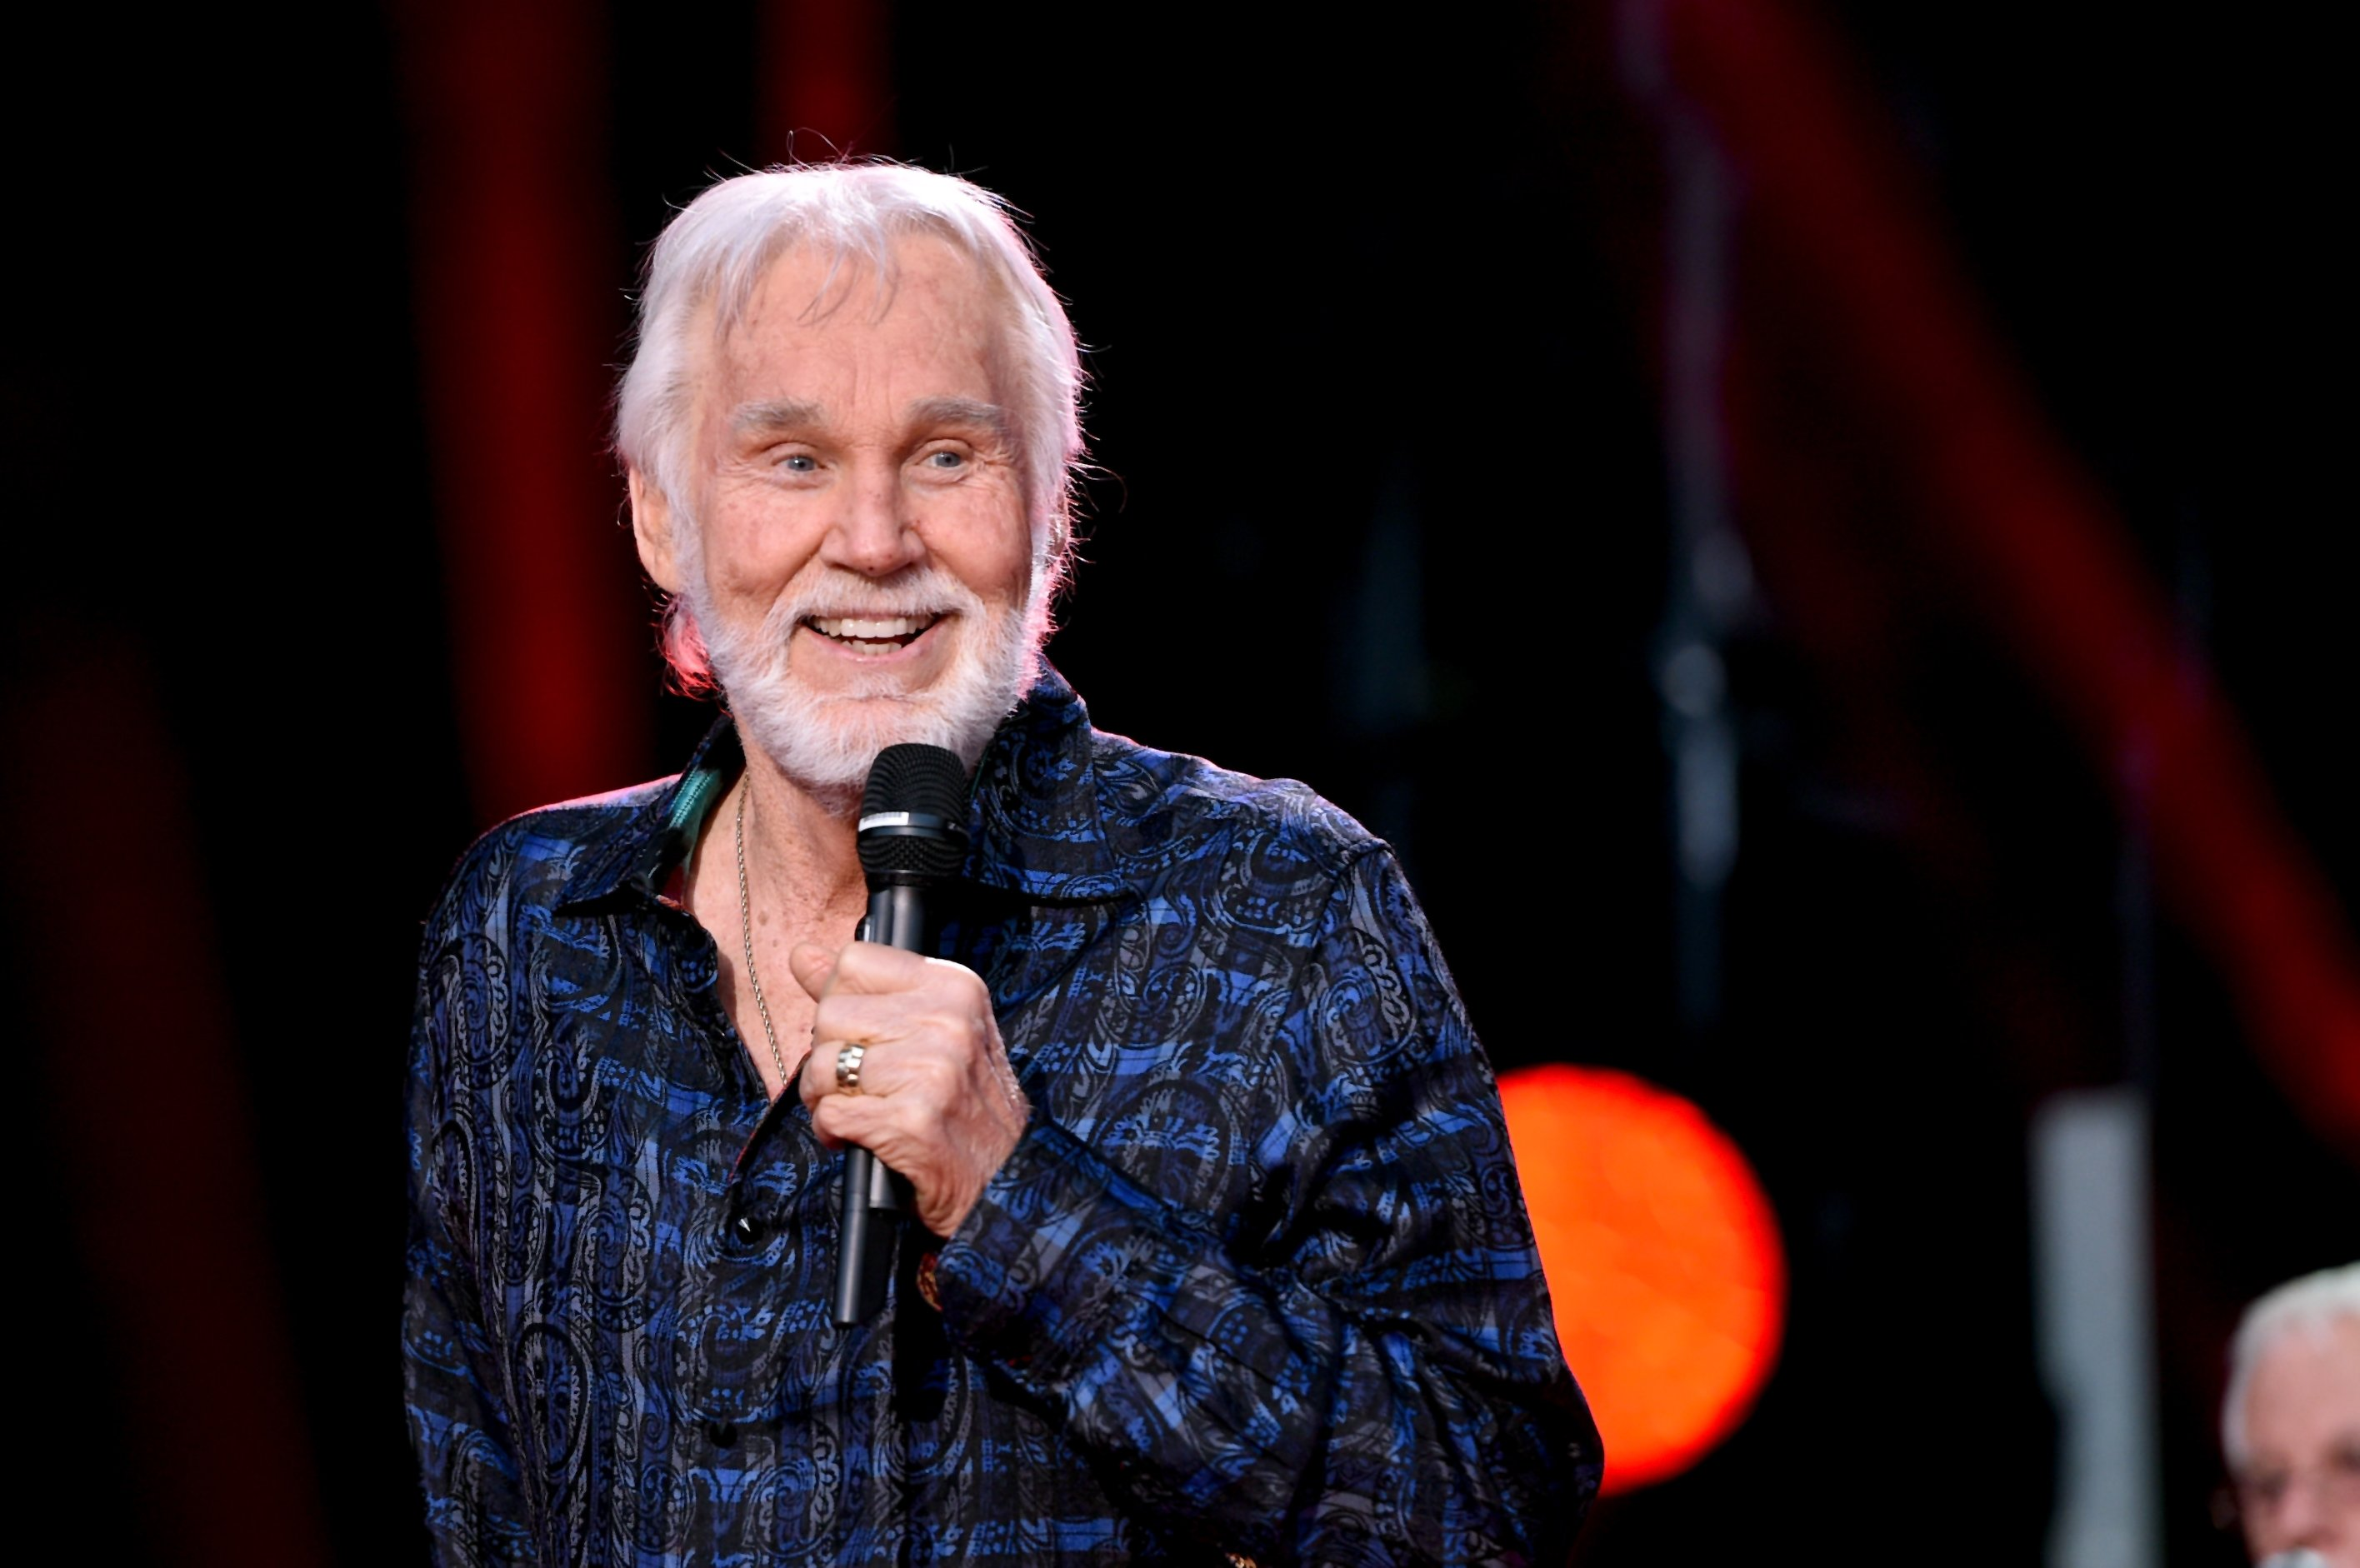 Kenny Rogers performs during the 2017 CMA Music Festival on June 8, 2017, in Nashville, Tennessee.   Source: Getty Images.